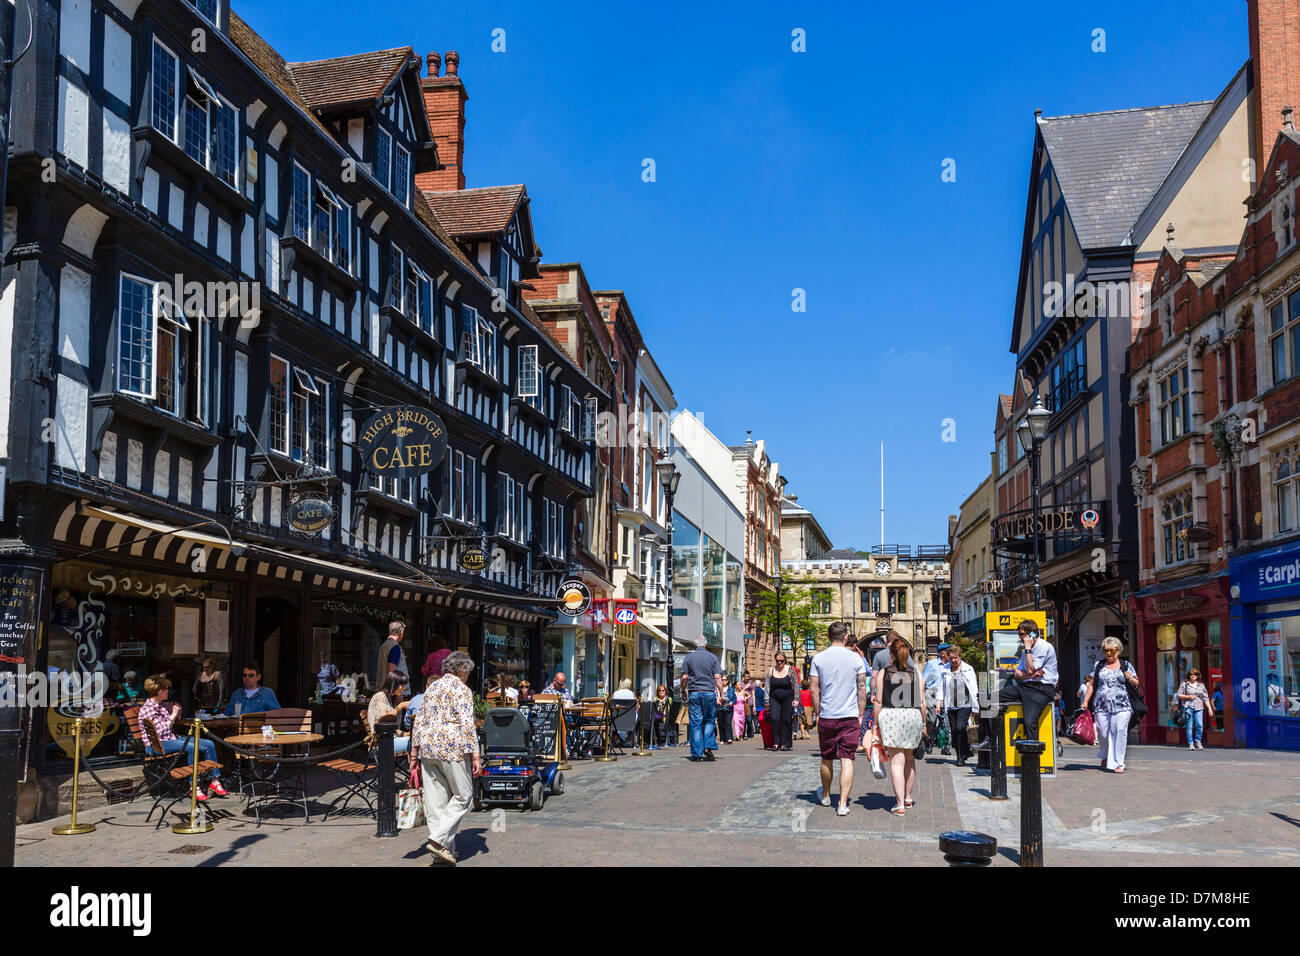 The High Street in the city centre, Lincoln, Lincolnshire, East Midlands, England, UK - Stock Image